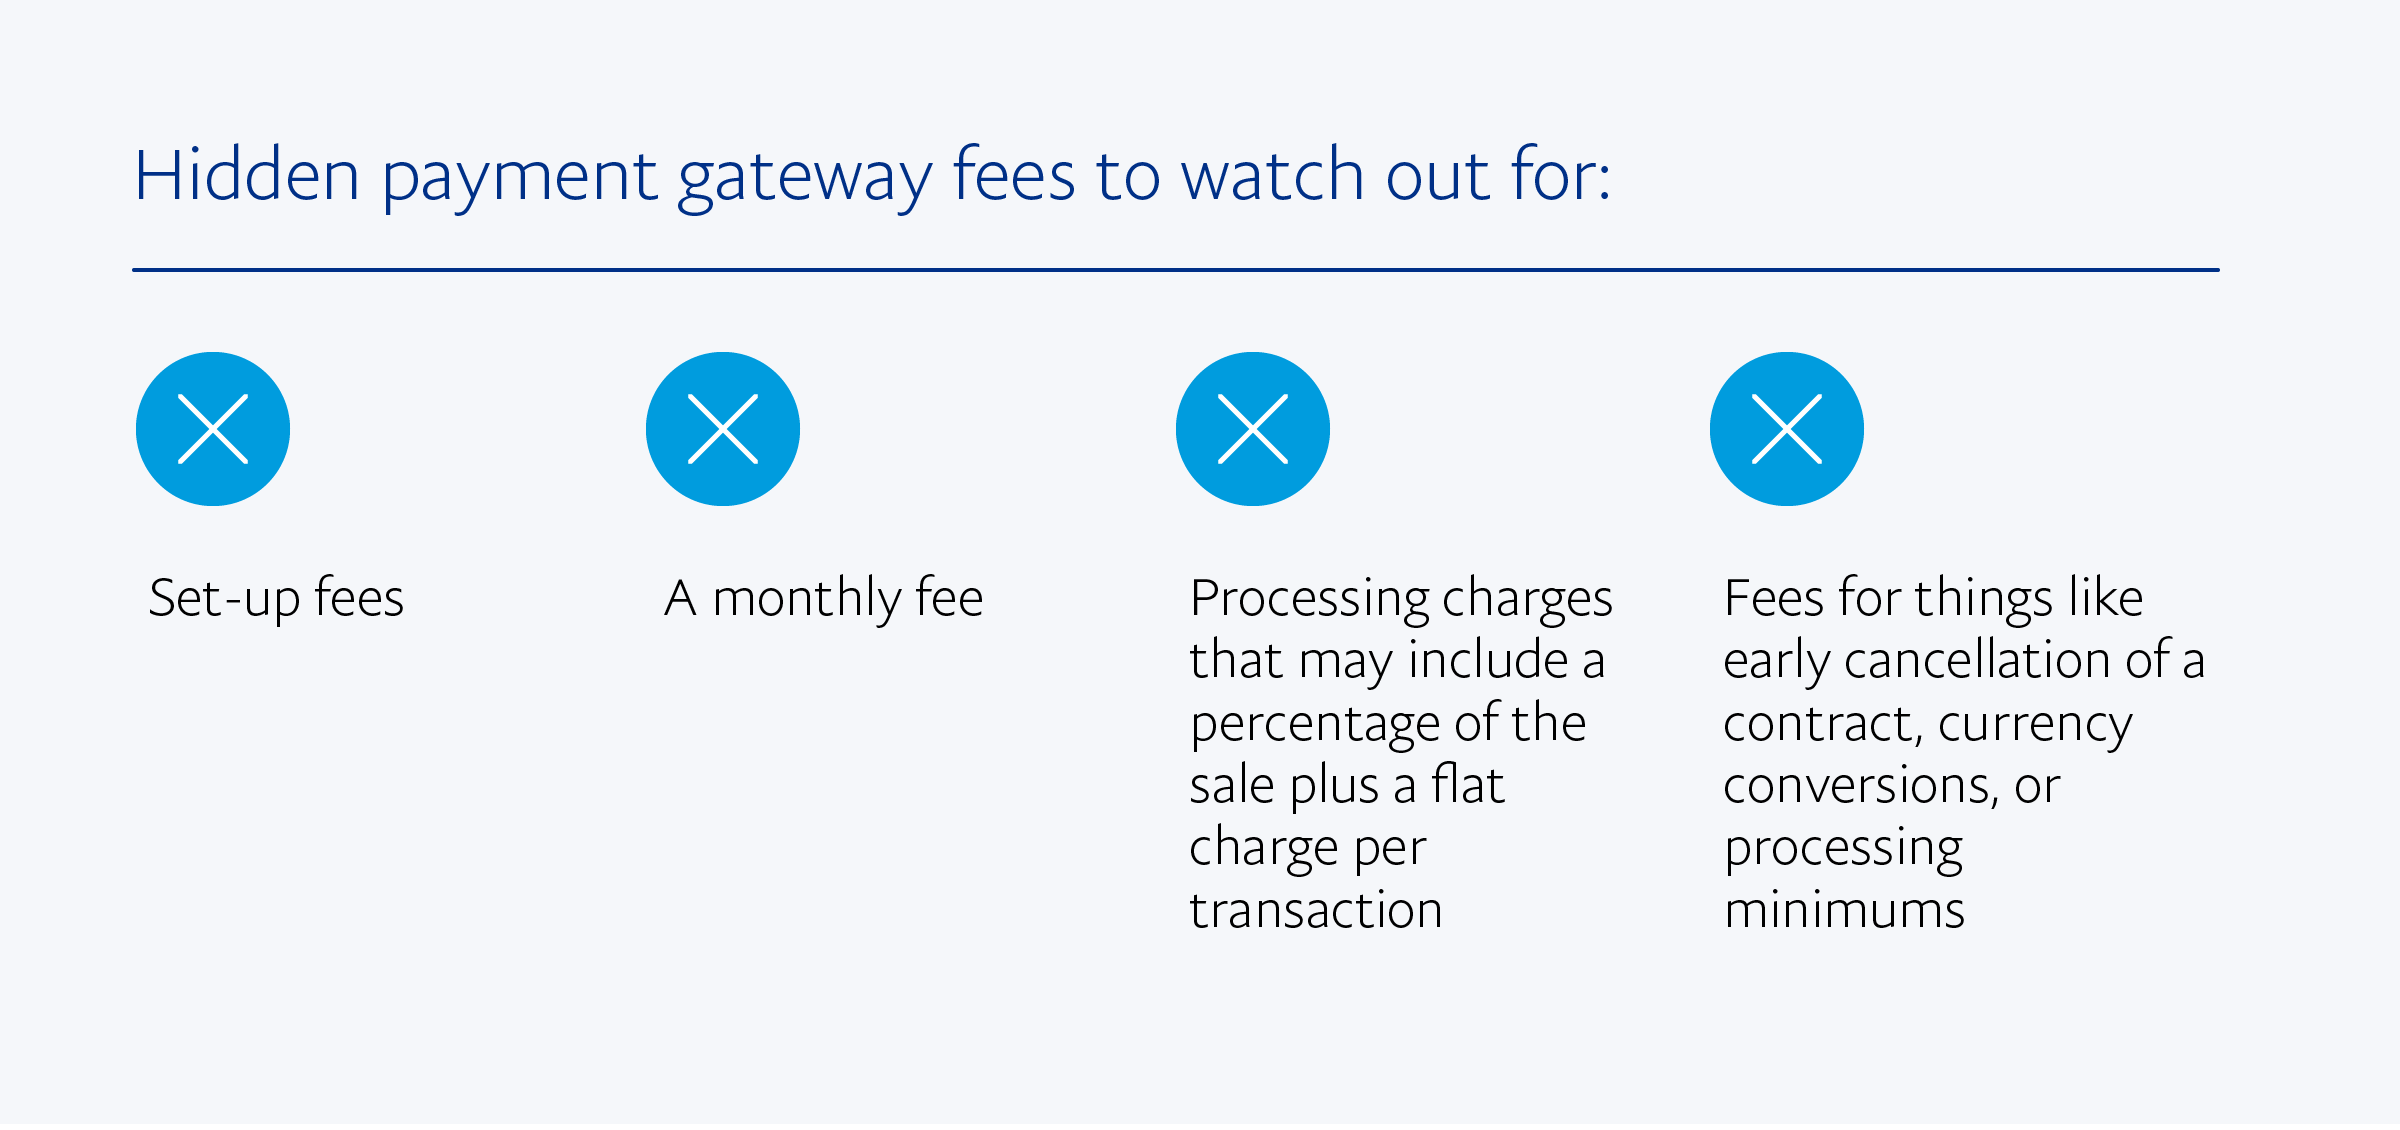 Hidden payment gateway fees to watch out for include: Set-up fees, a monthly fee, processing charges that may include a percentage of the sale plus a flat charge per transaction Fees for things like early cancellation of a contract, currency conversions, or processing minimums